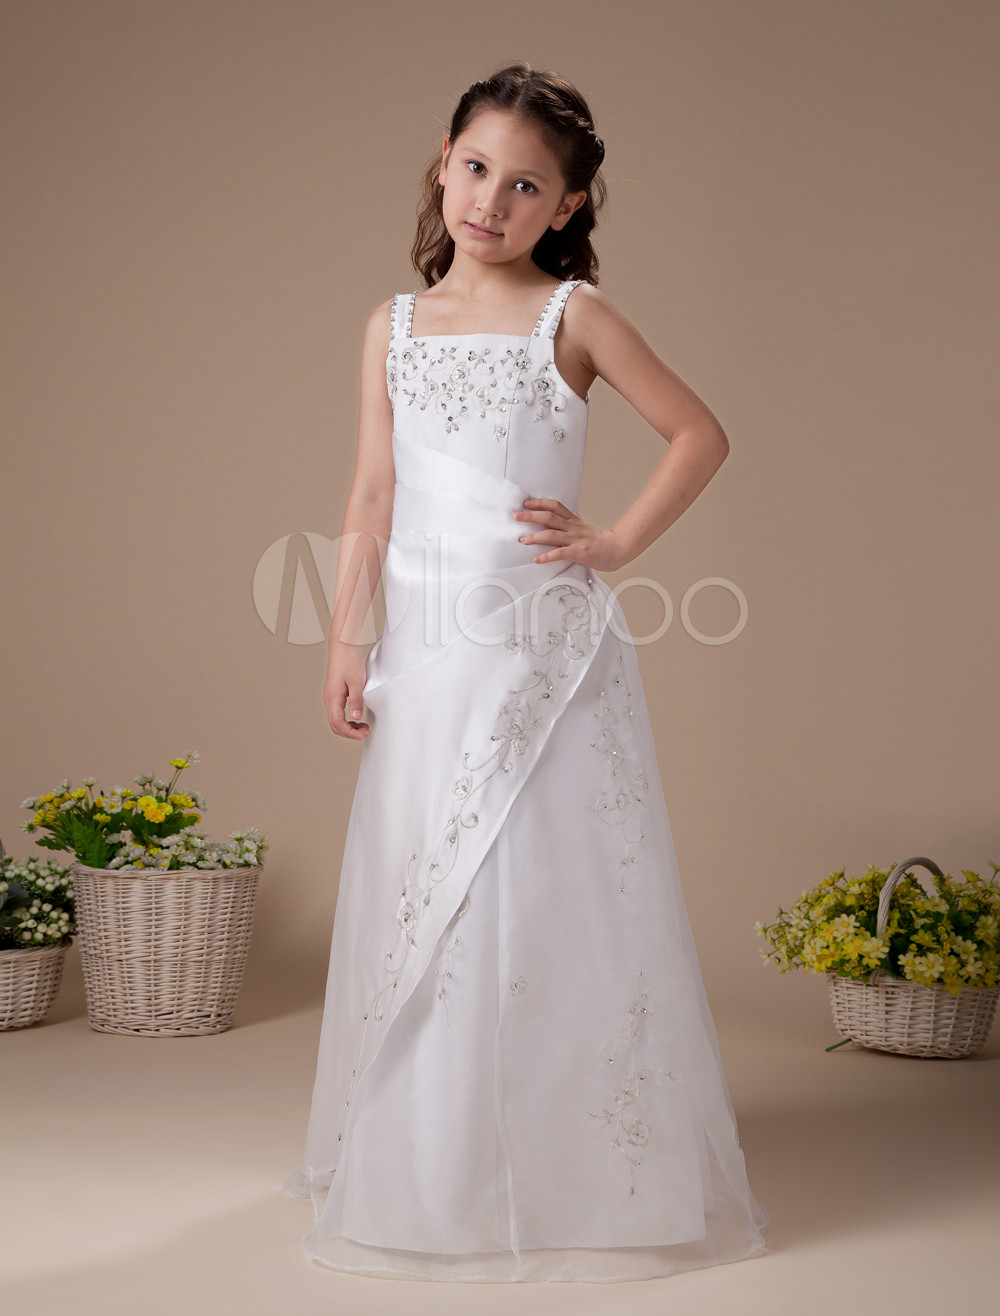 White Sleeveless Embroidery Satin Flower Girl Dress